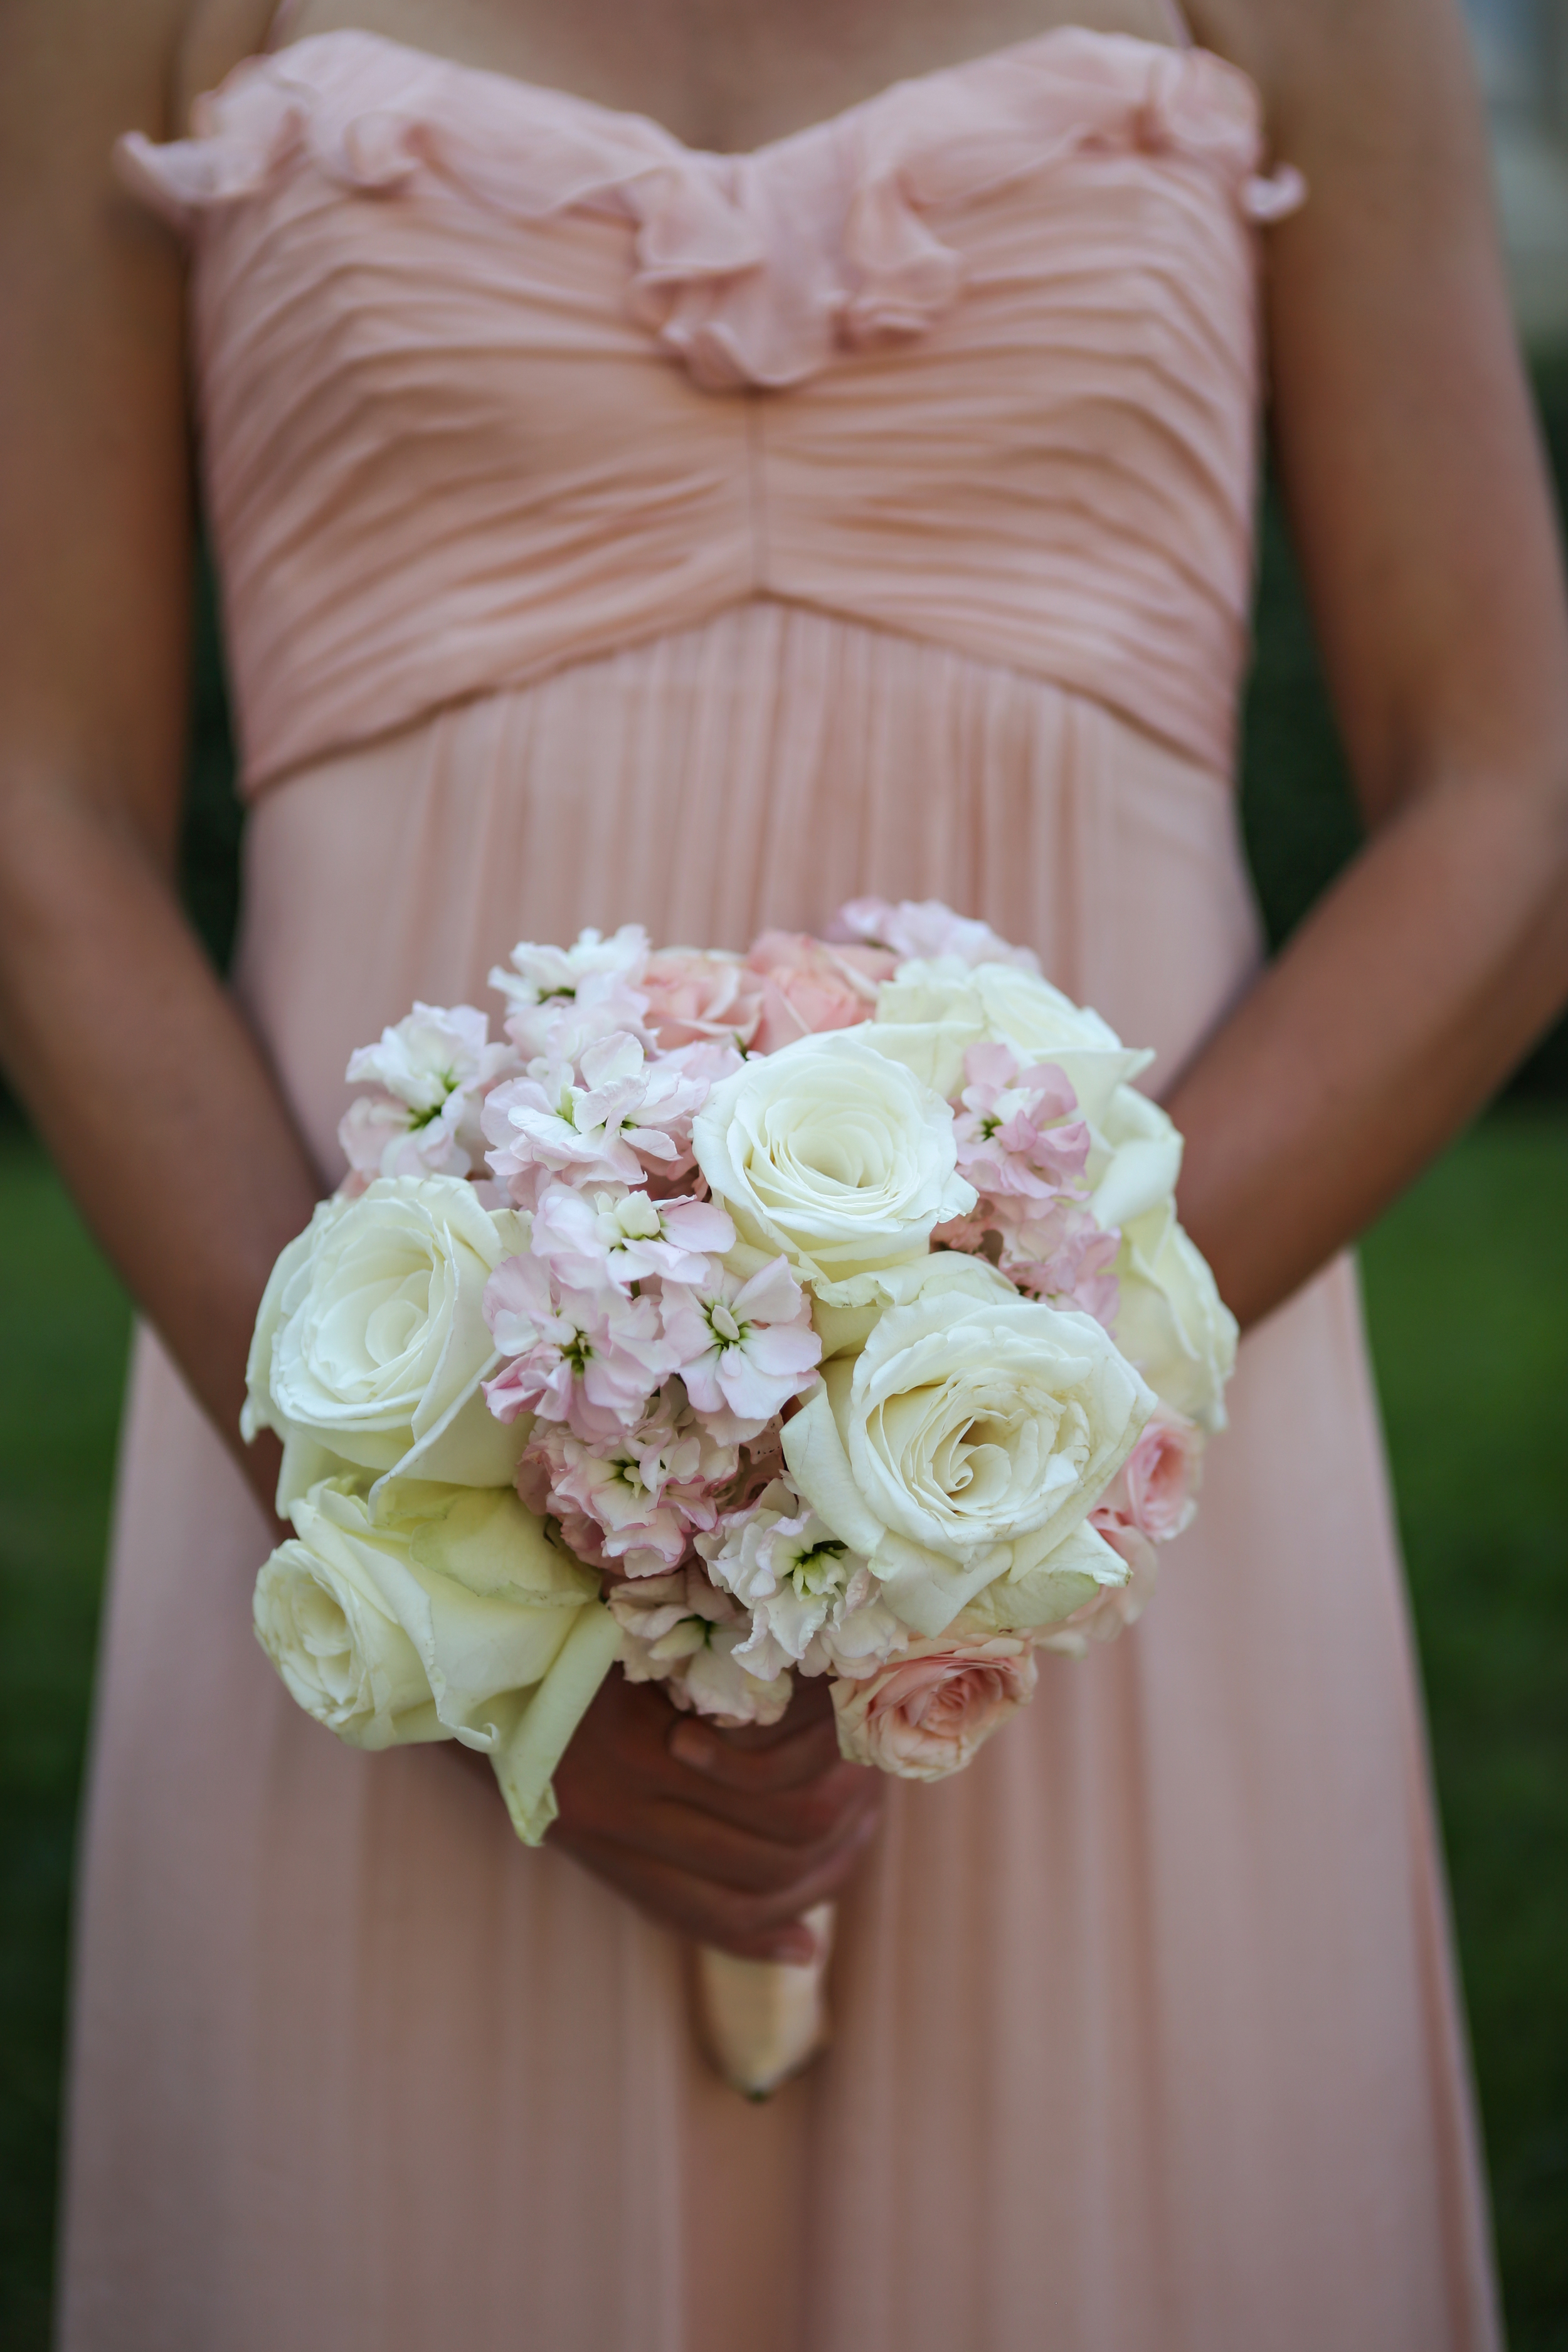 Bridesmaid bouquets complimented the wedding colors with White Dove Roses, Starblush Spray Roses, and Hydrangea.